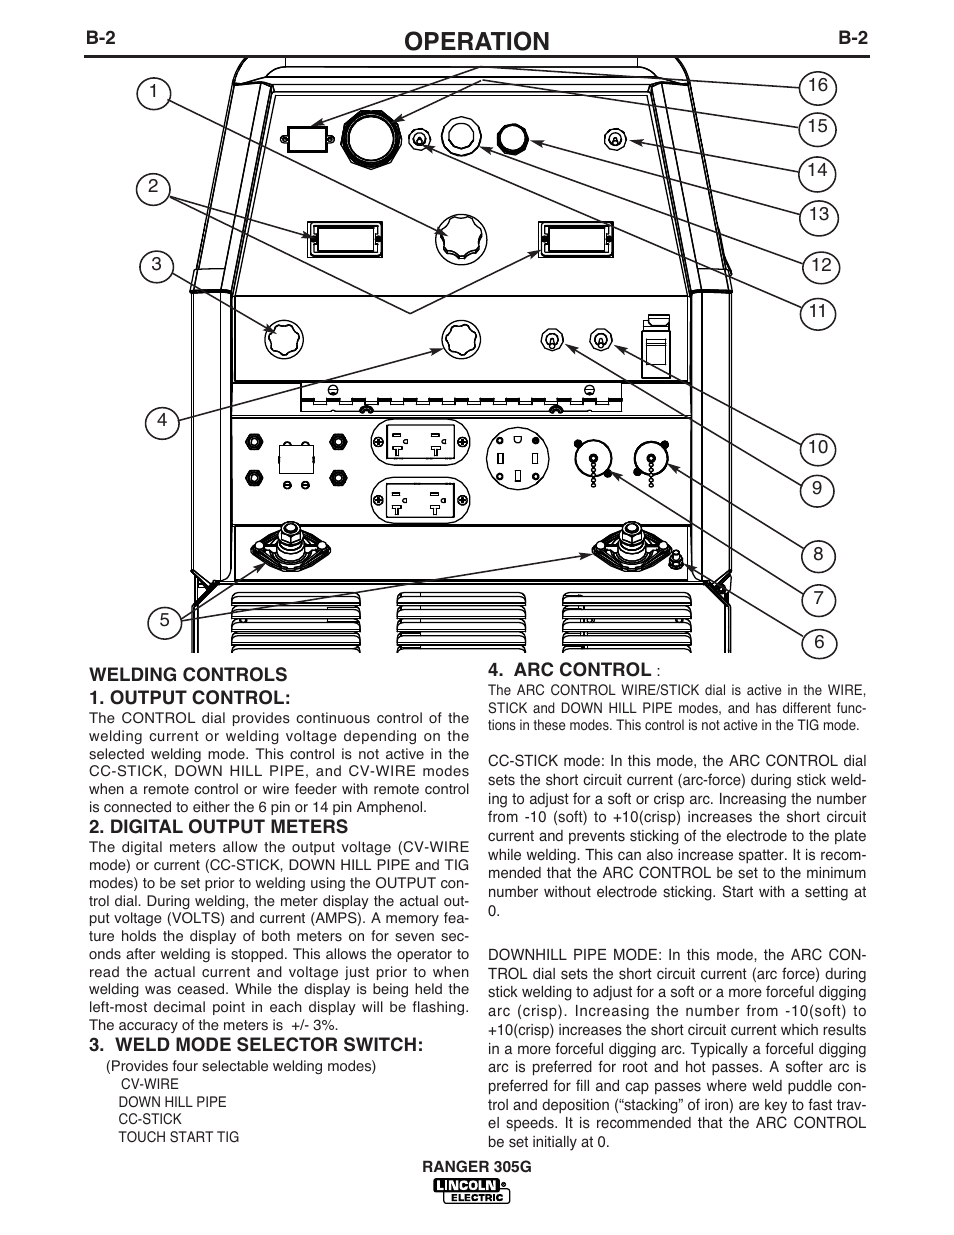 lincoln 305g wiring diagram operation lincoln electric ranger 305g user manual page 19 49  lincoln electric ranger 305g